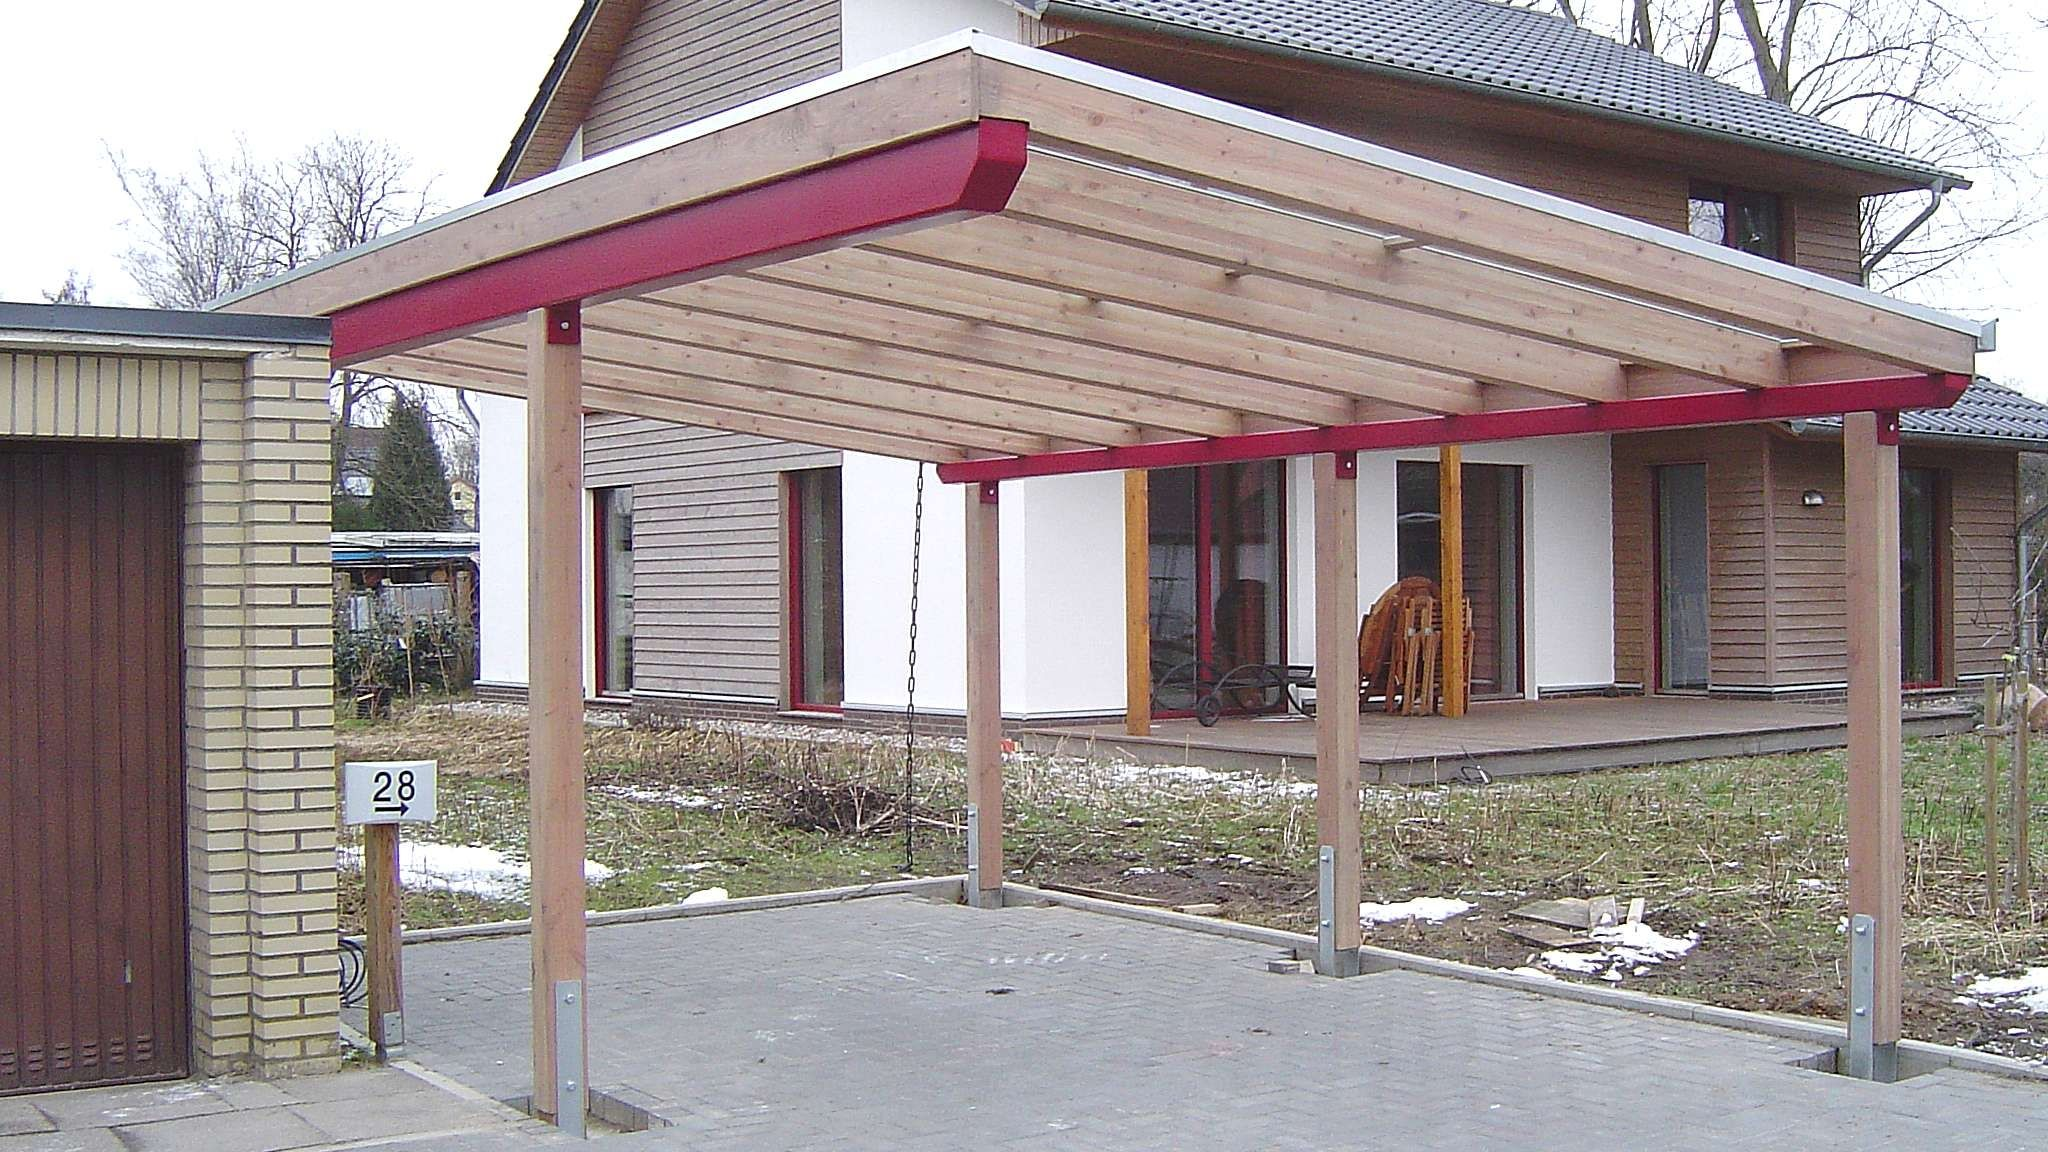 Glasdach Carports Carport In Holz Alu Stahl Carport Bausatz Outdoor Decor Home Decor Carport